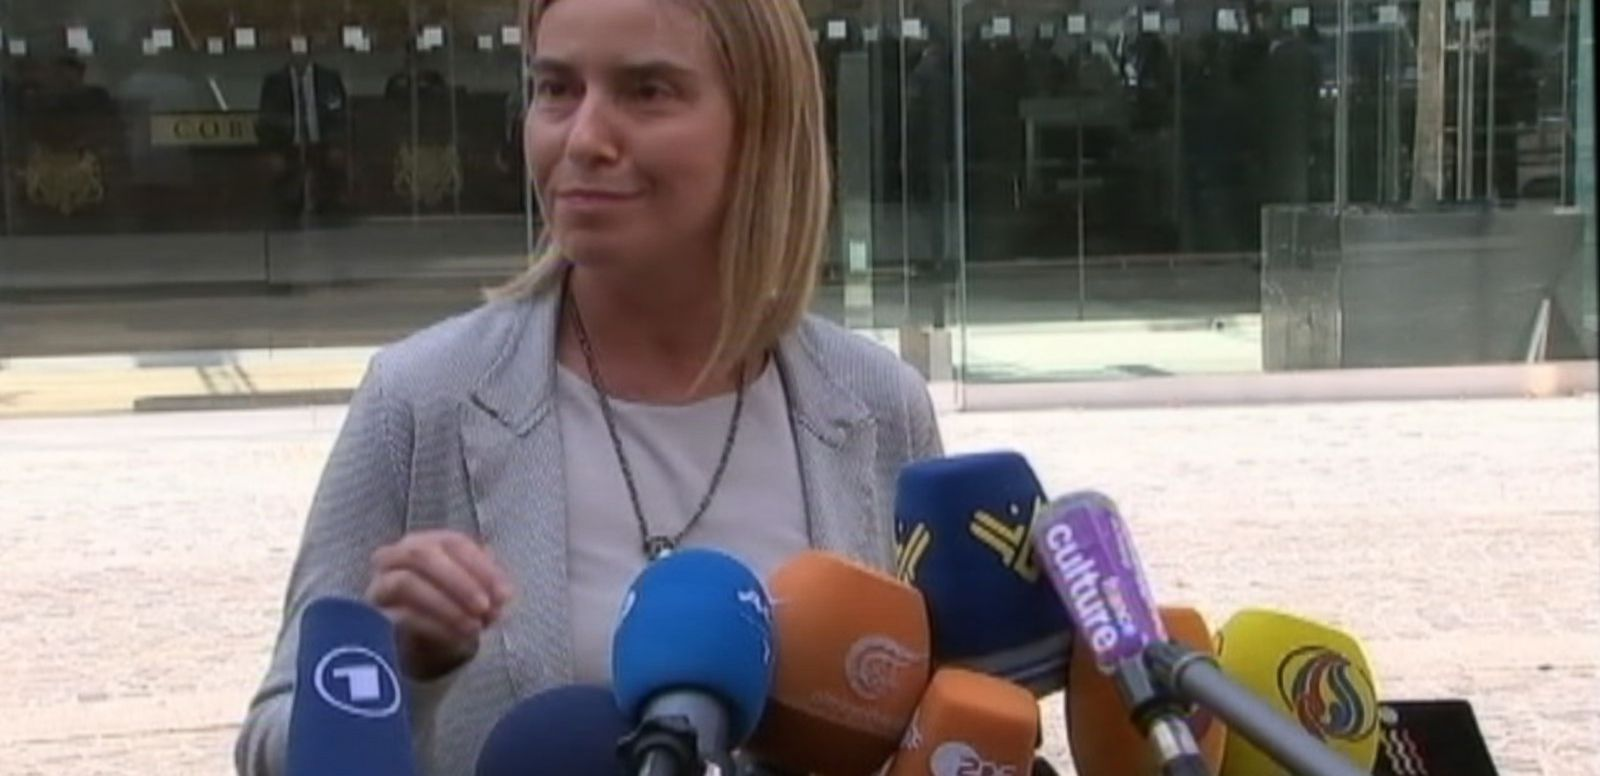 VIDEO: EU Foreign Policy Chief Announces Flexibility With Iran Nuclear Deadline